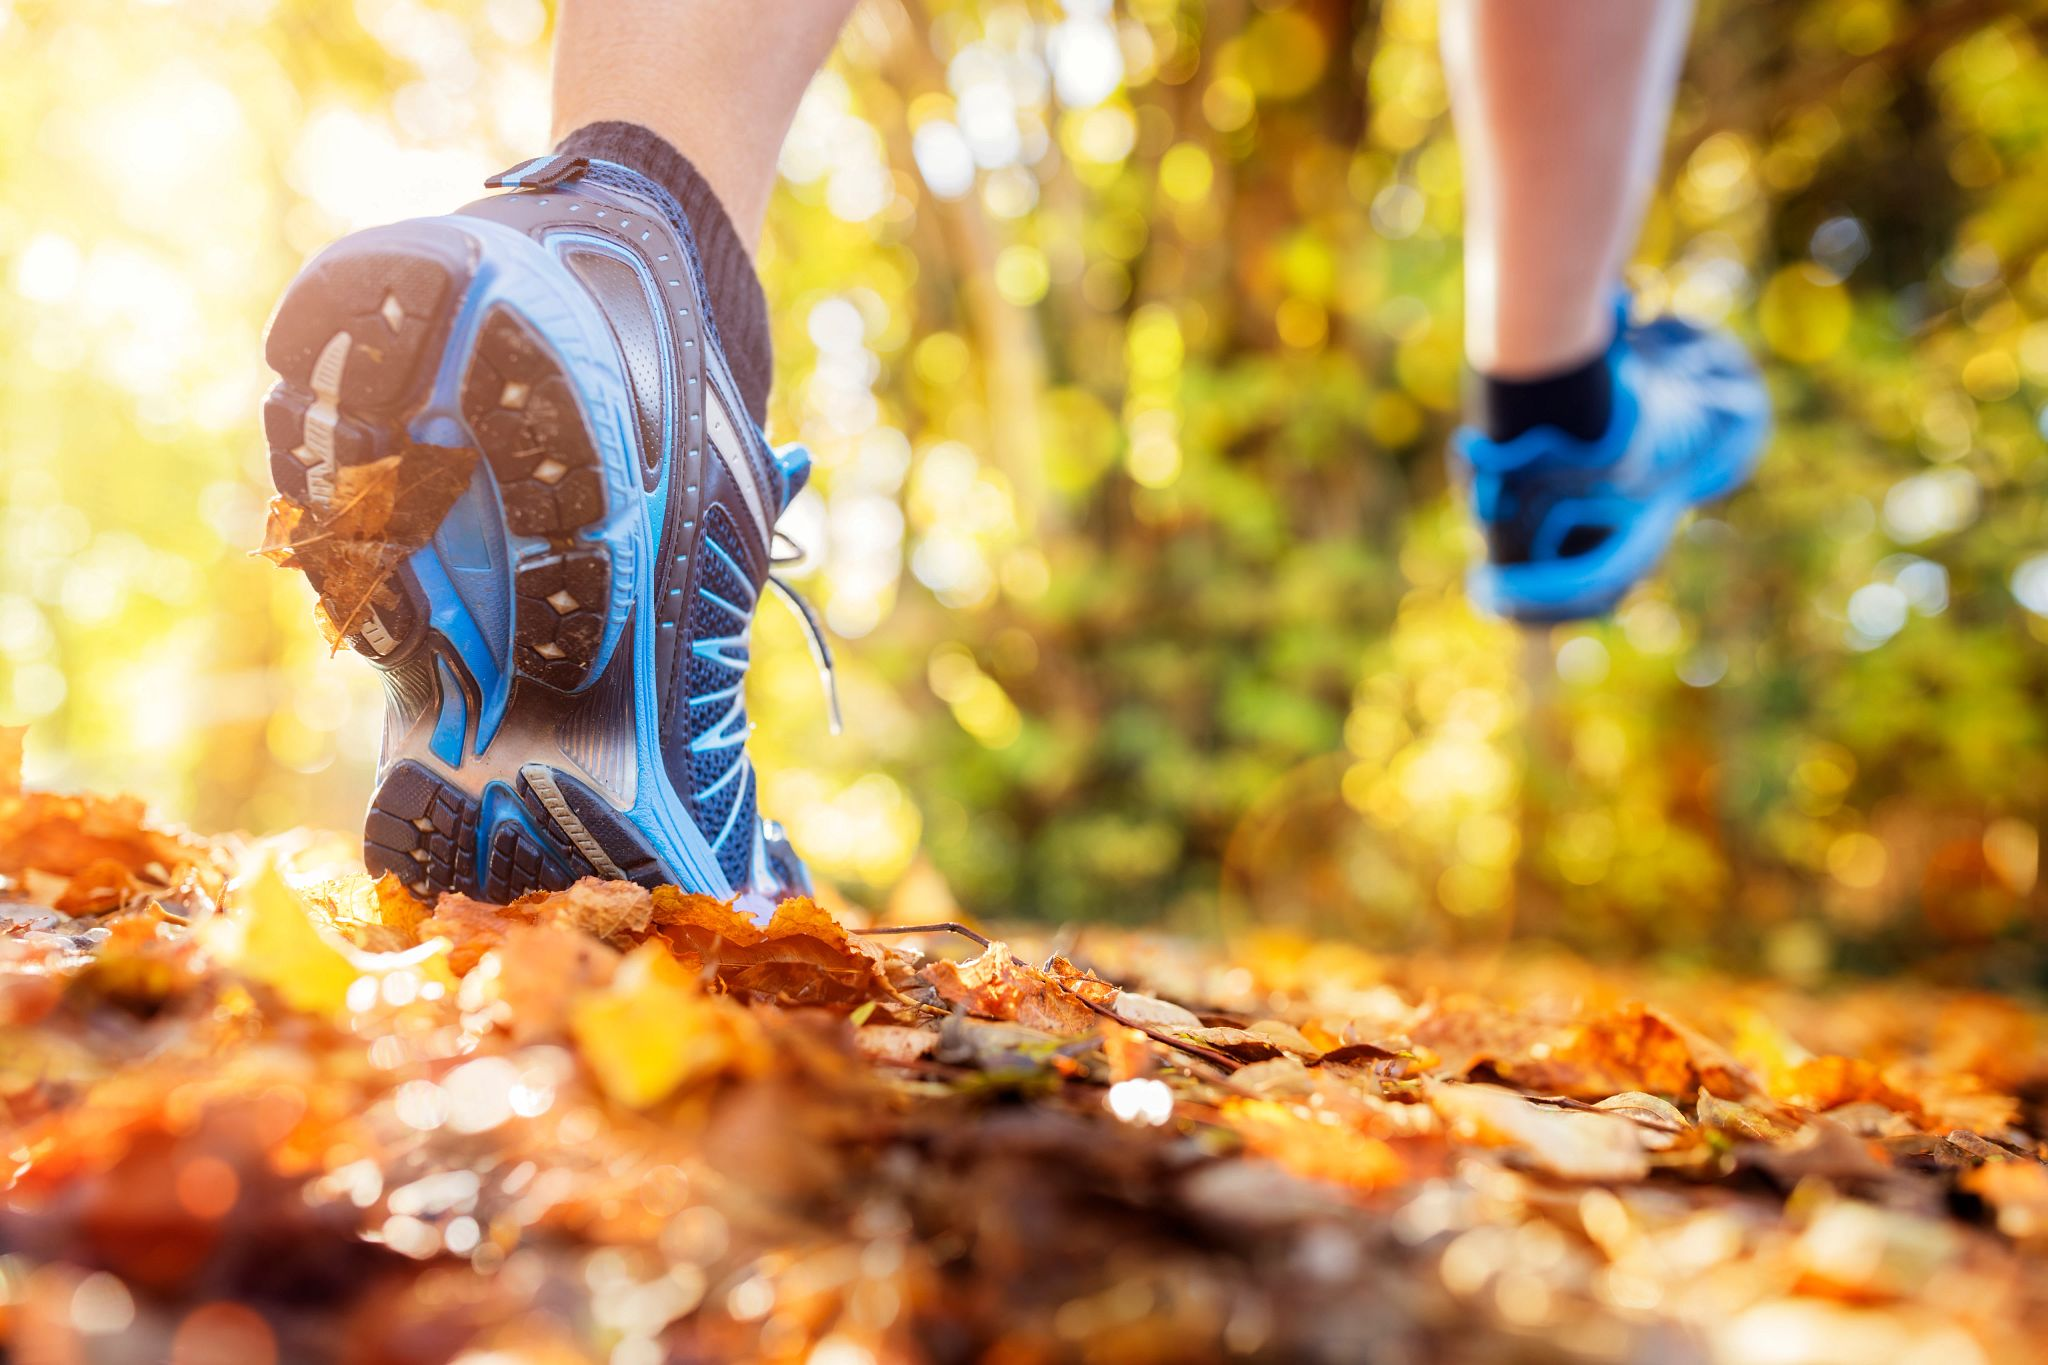 An image of a runner's feet as they dash through a trail full of leaves.